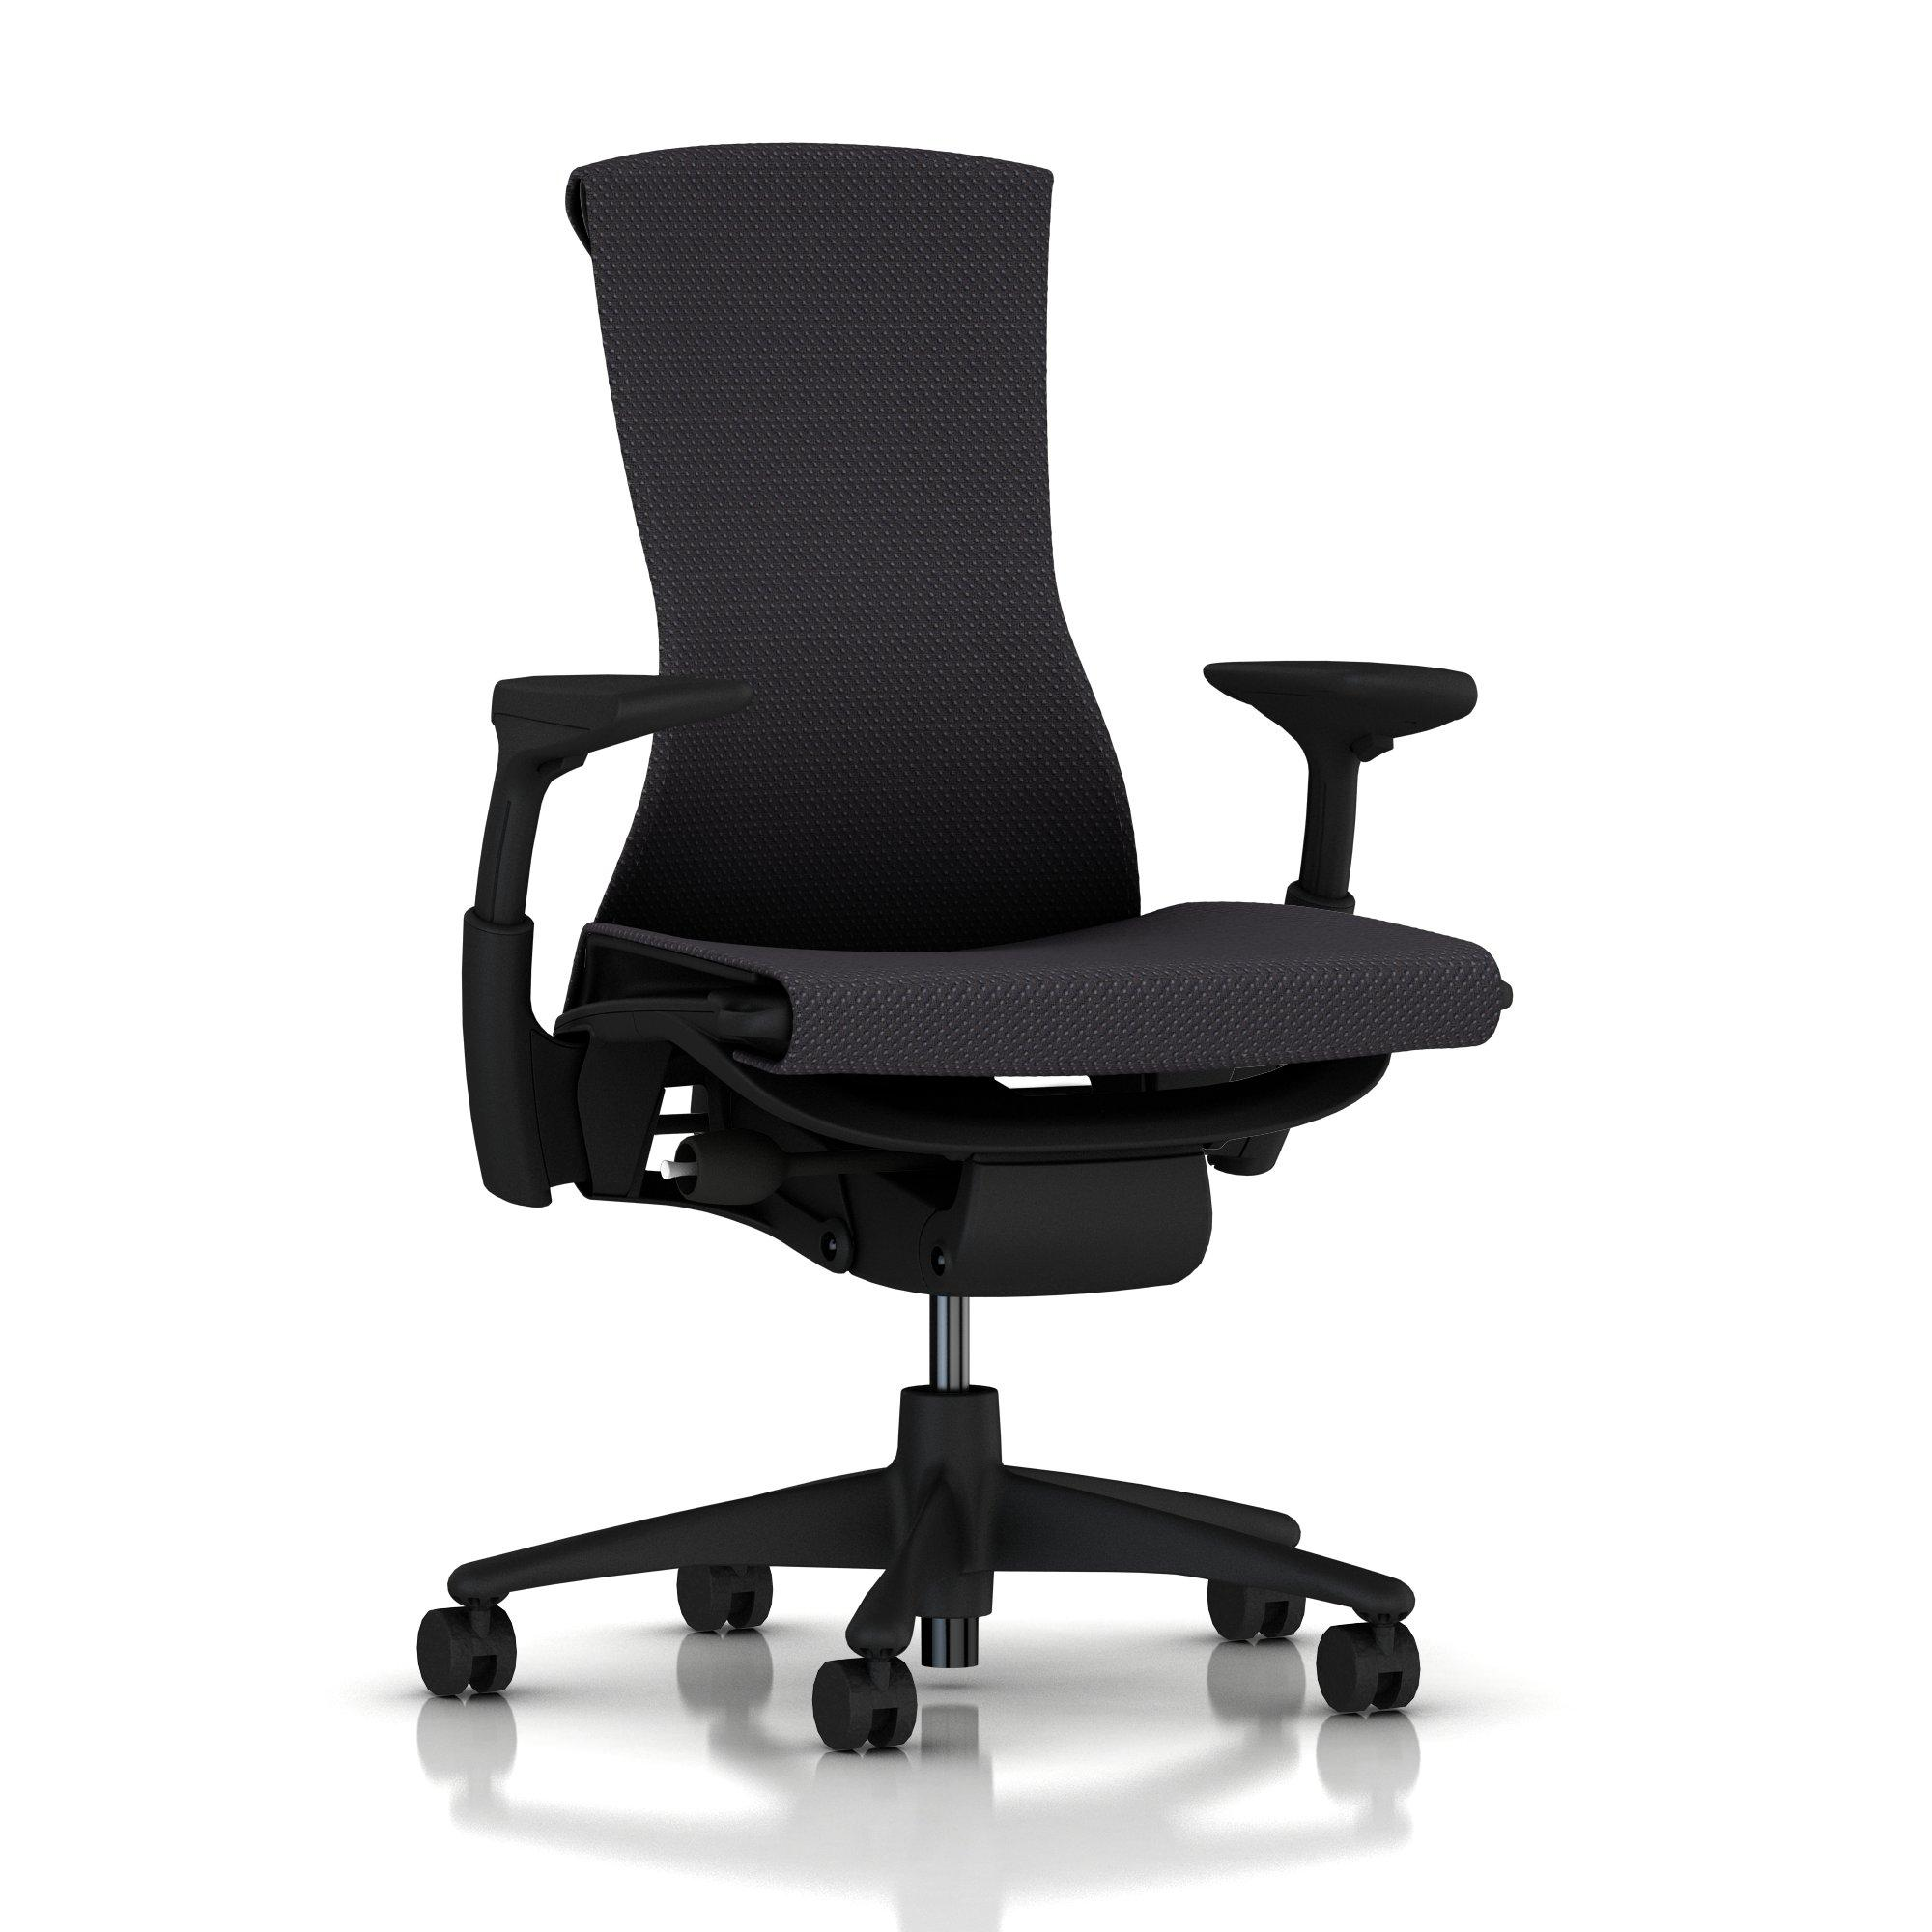 NEW - Embody Chair (Carbon Balance)